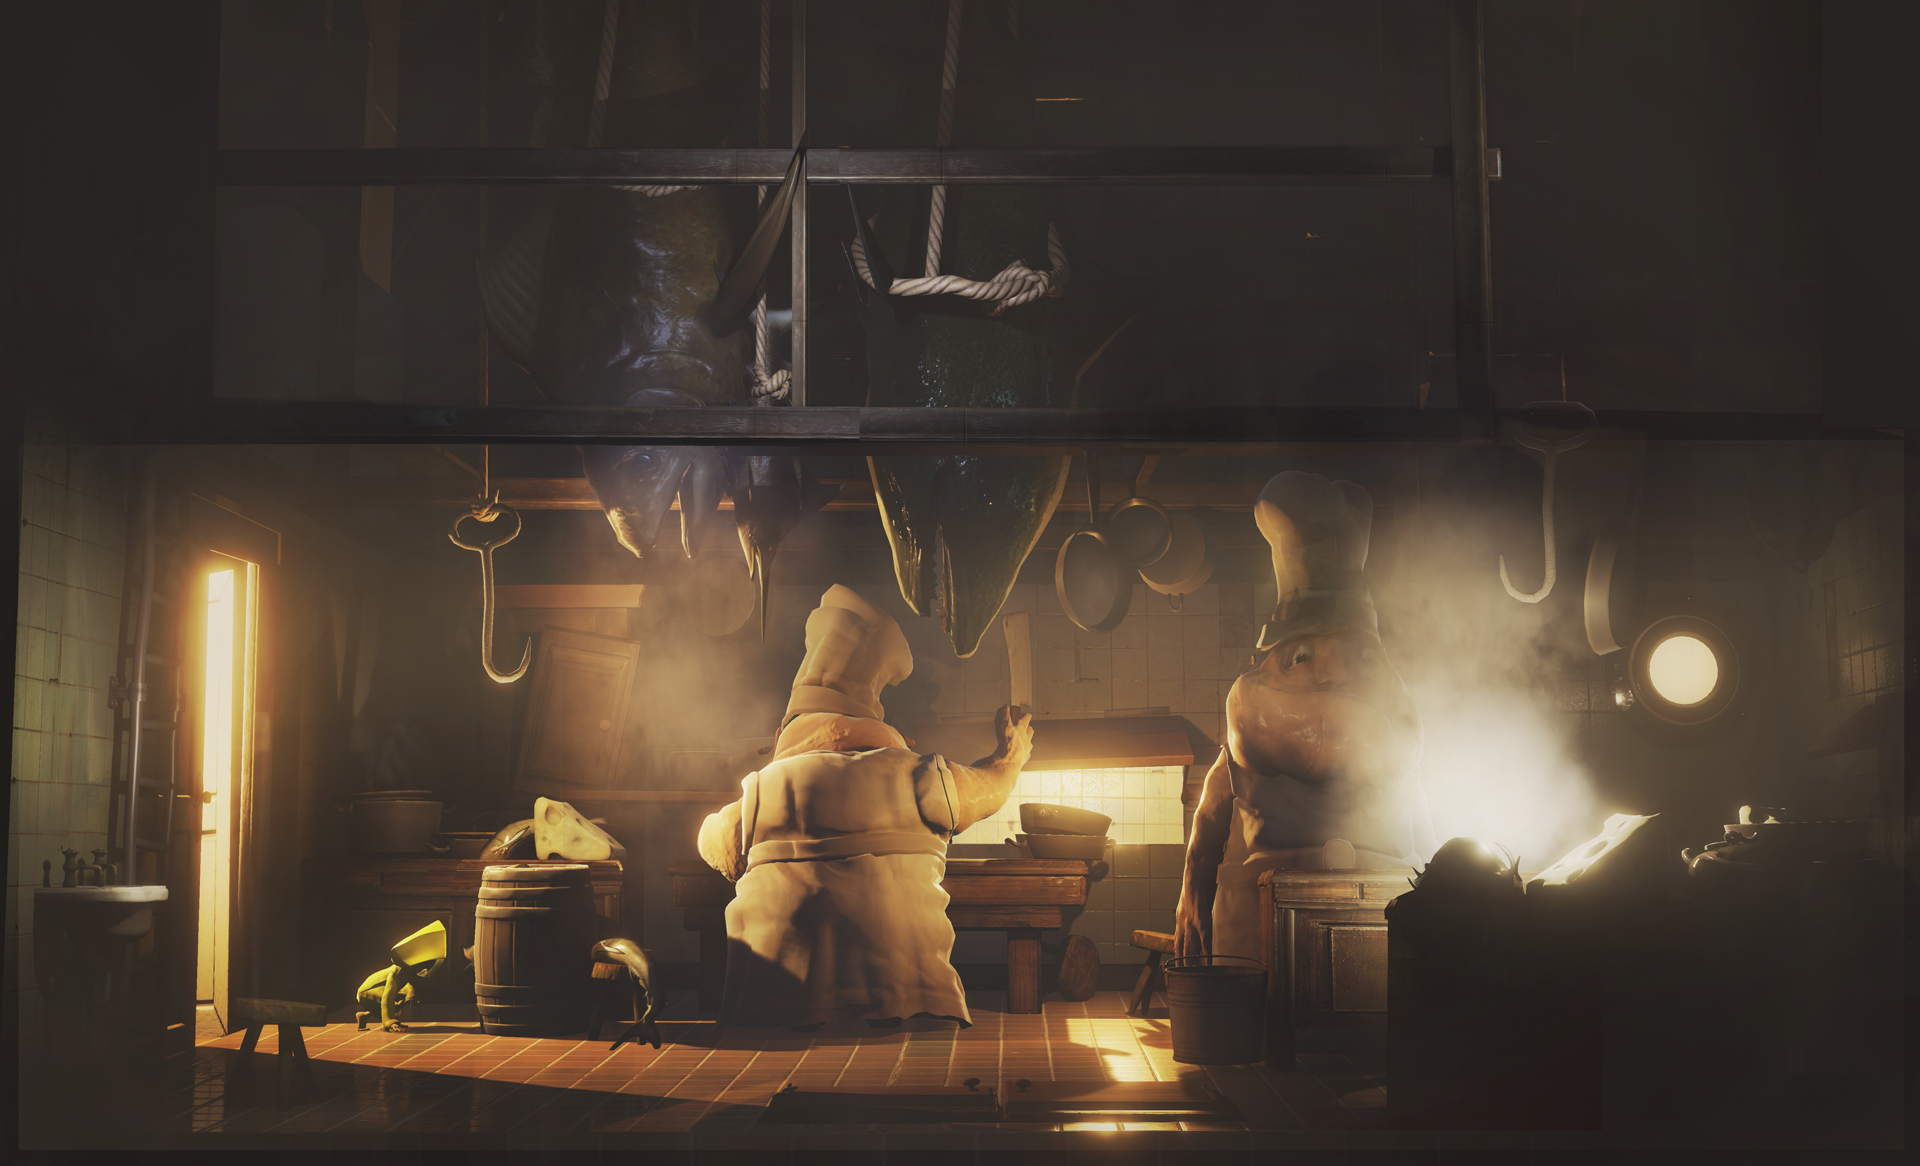 The Twin Chefs are responsible for cooking food for The Guestsaboard The Maw in Little Nightmares.